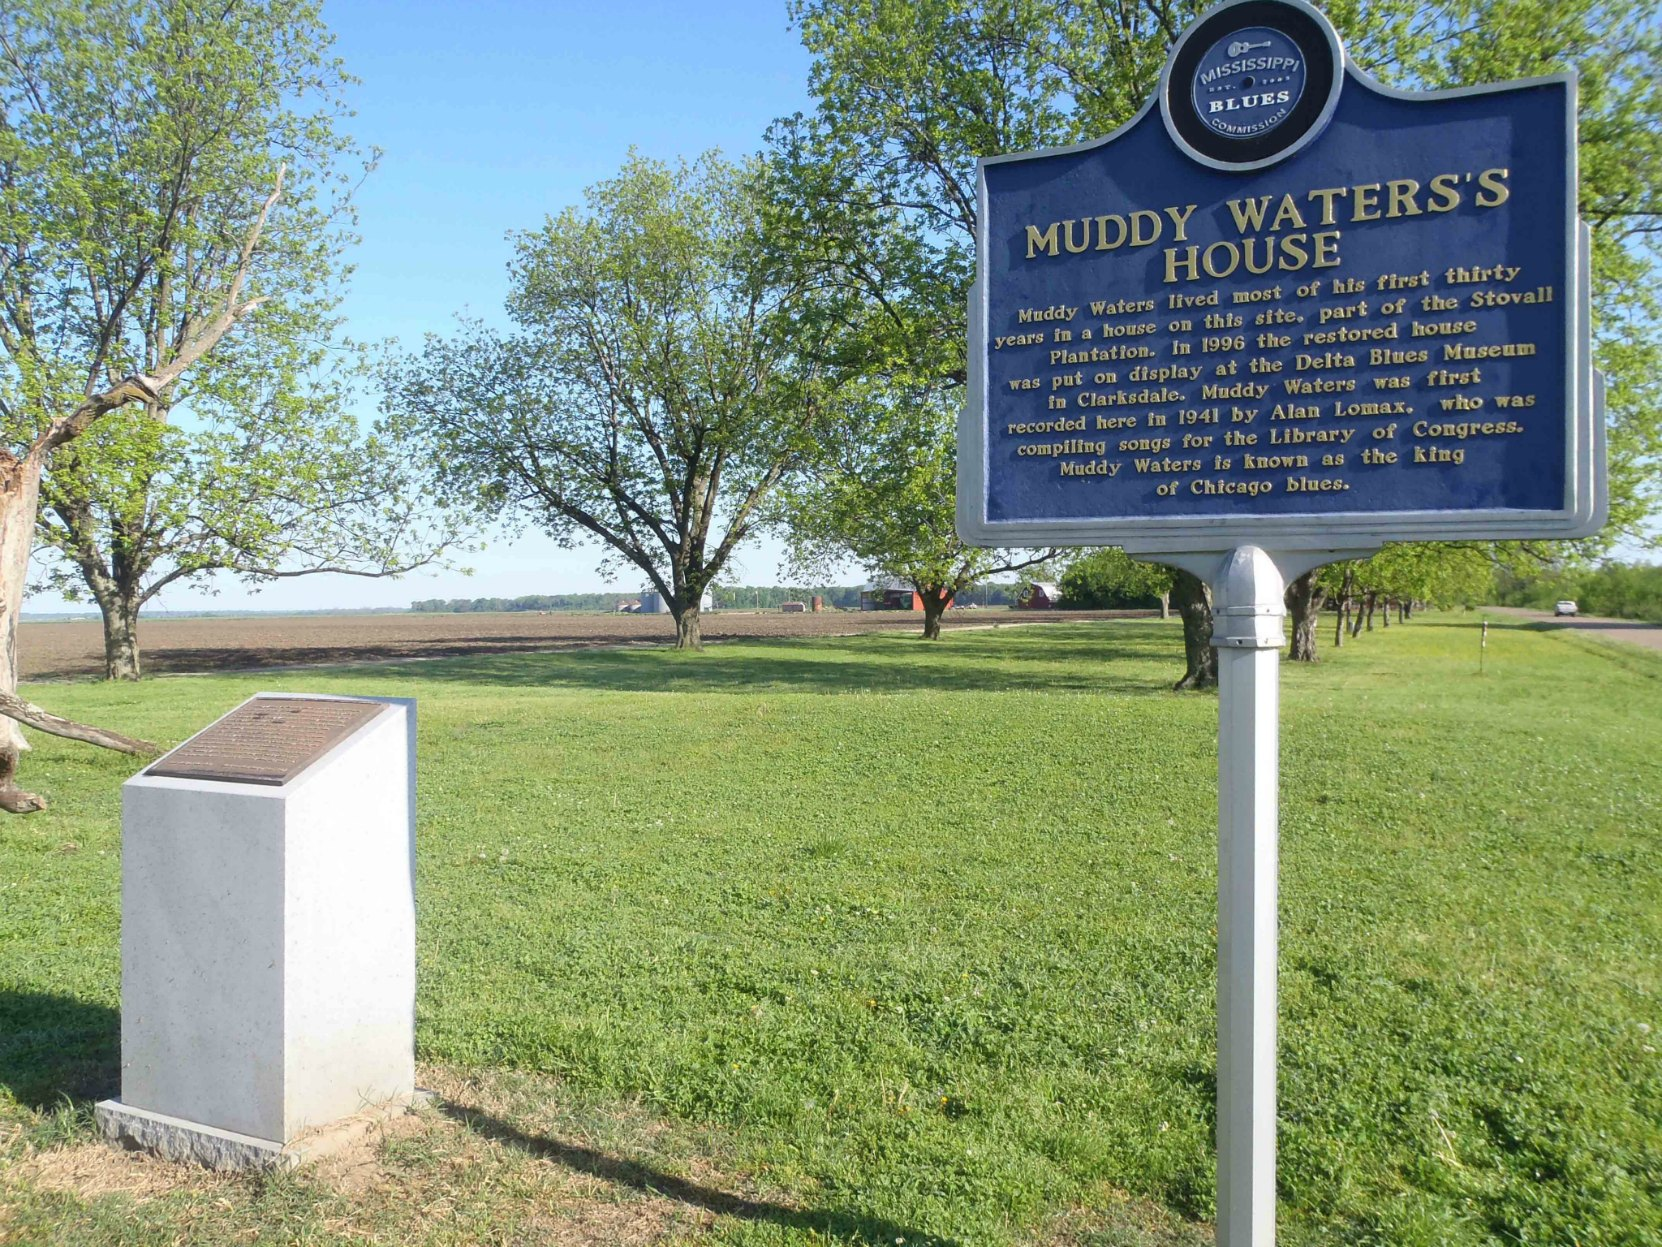 The Mississippi Blues Trail marker and the Blues Hall of Fame marker at the Muddy Waters House site, Stovall Farms, outside Clarksdale, Mississippi.